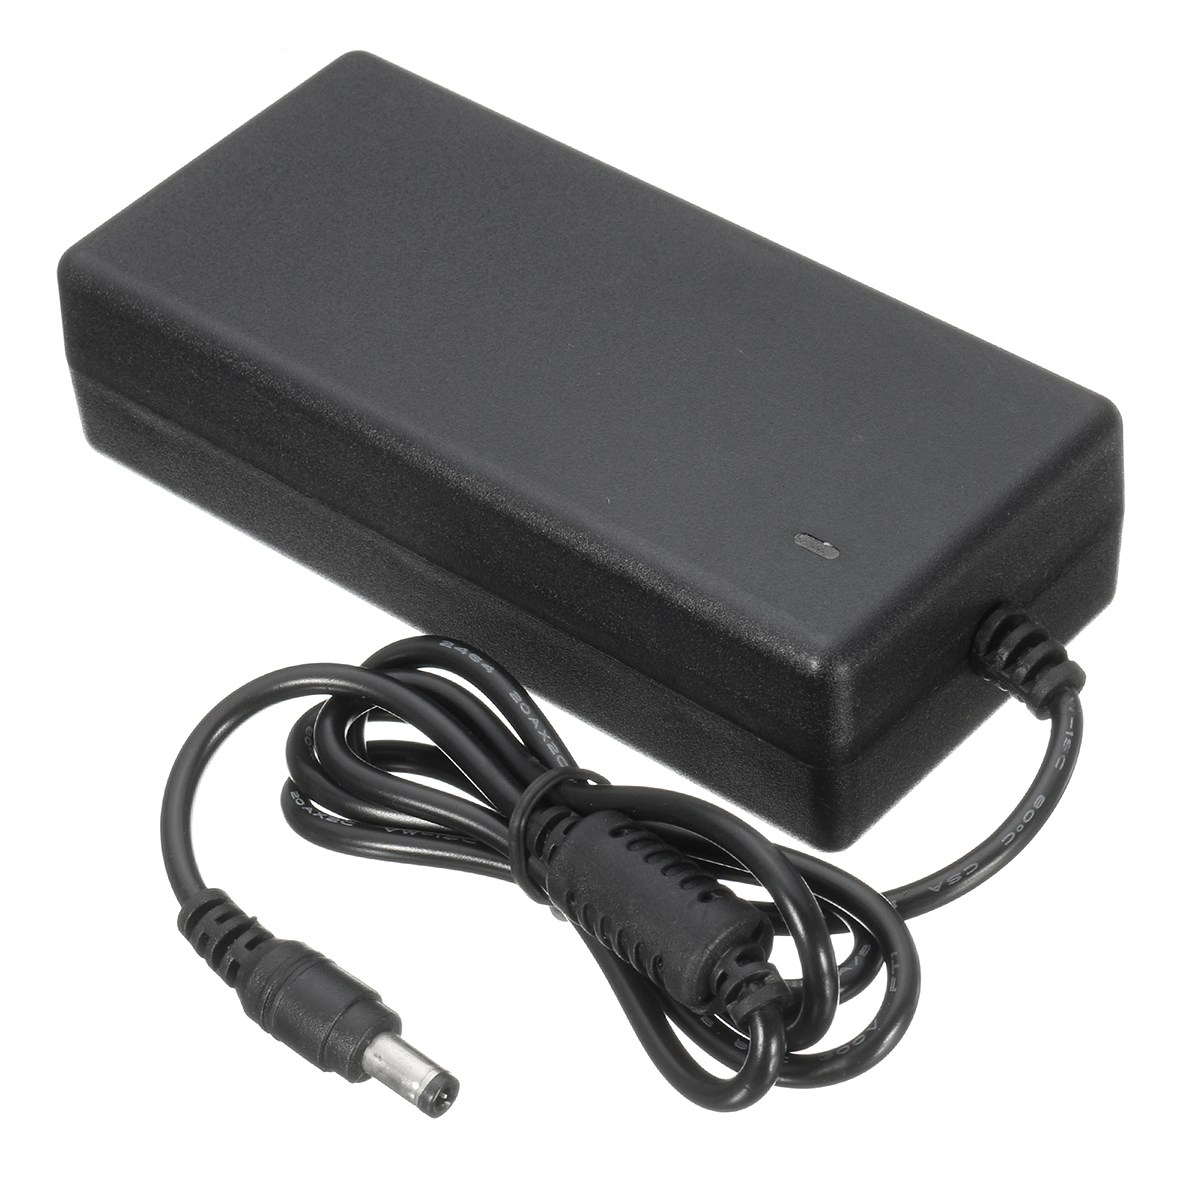 1Pcs 24V 2A AC to DC Adapter Charger For Logitech Racing Wheel G27 G25 G940 APD DA-42H24 ADP-18L Power Supply With AC Cable